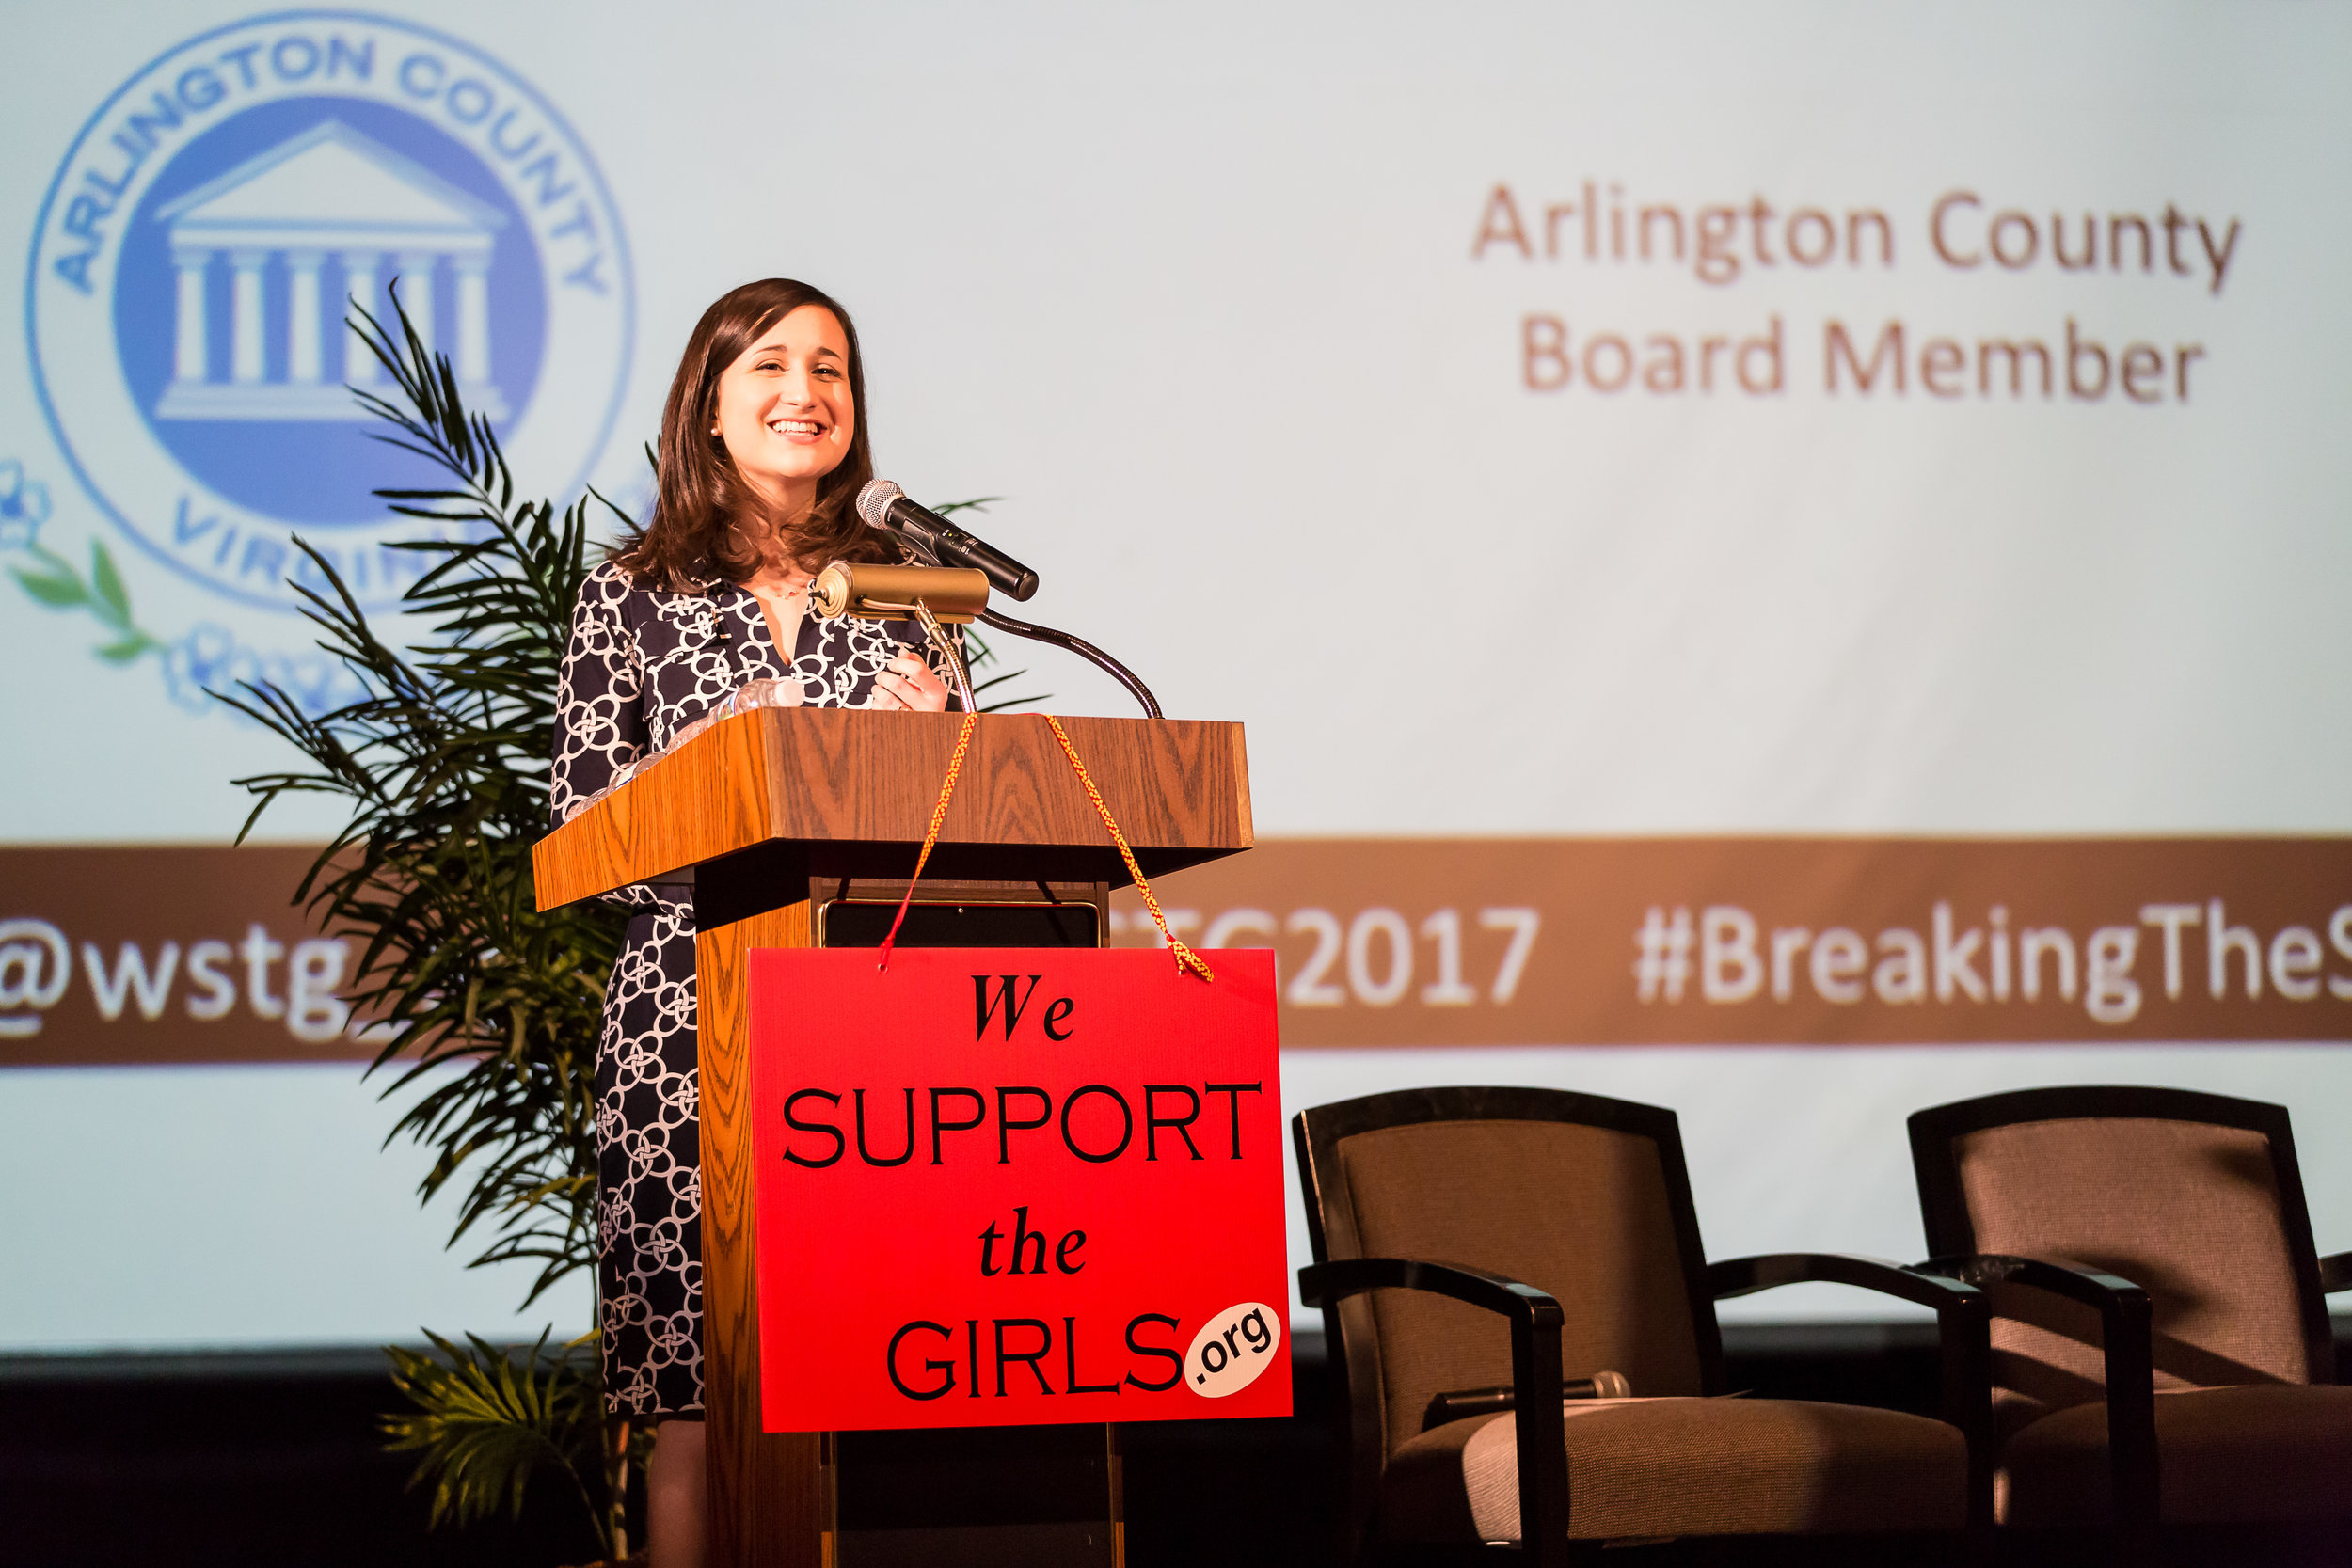 Katie Cristol, Arlington County Board member, Breaking The Silence to End Child Sexual Abuse